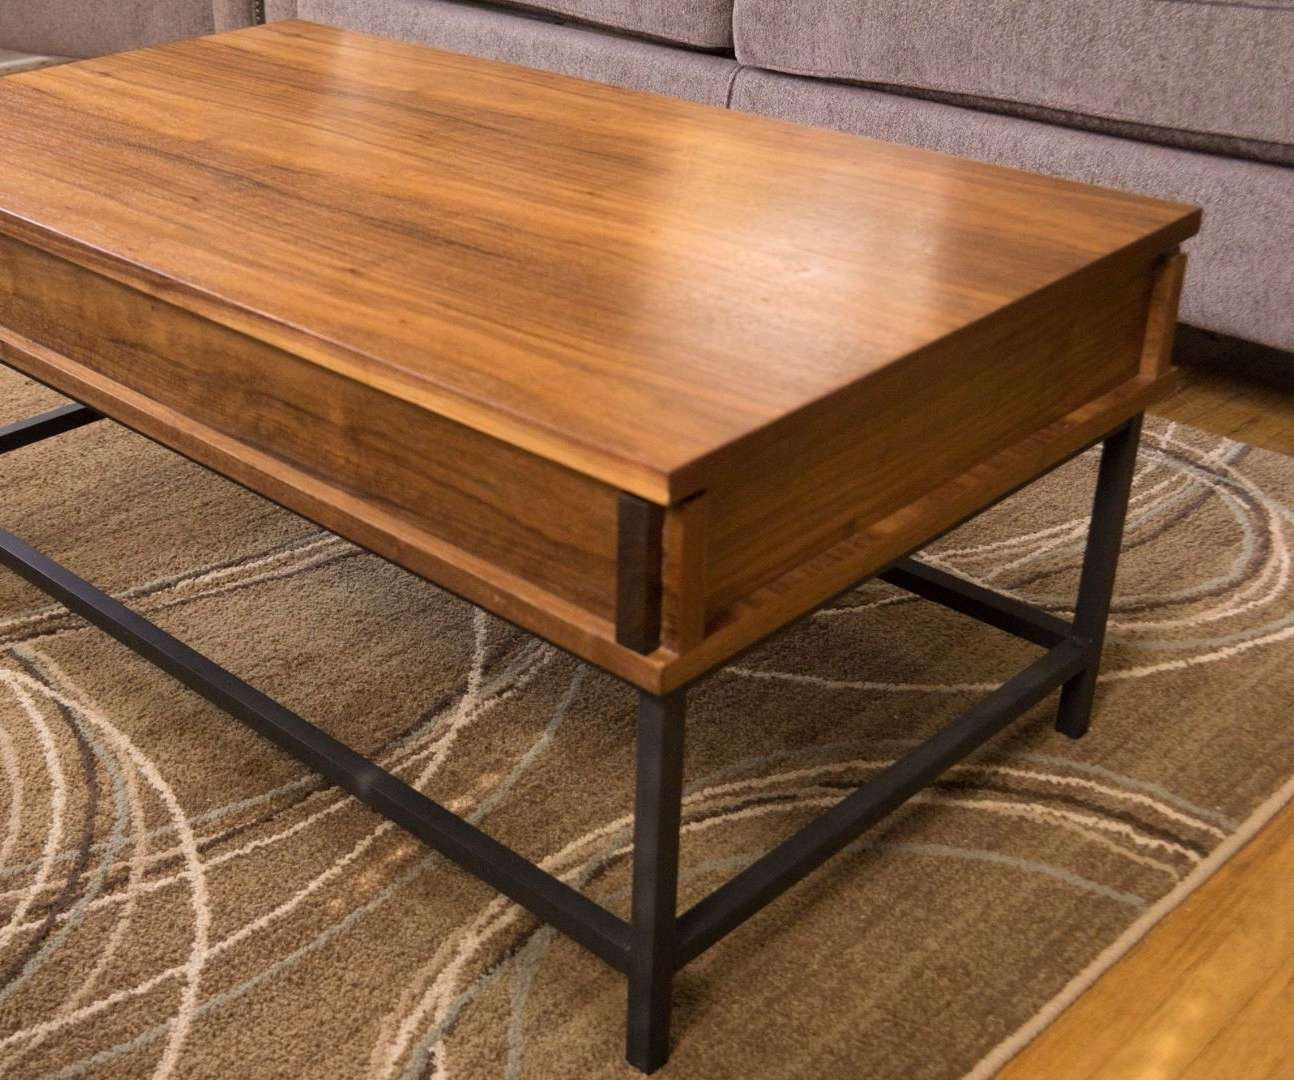 How To Make A Coffee Table With Lift Top: 18 Steps (with Pictures) With Regard To Fashionable Coffee Tables With Lift Up Top (View 10 of 20)